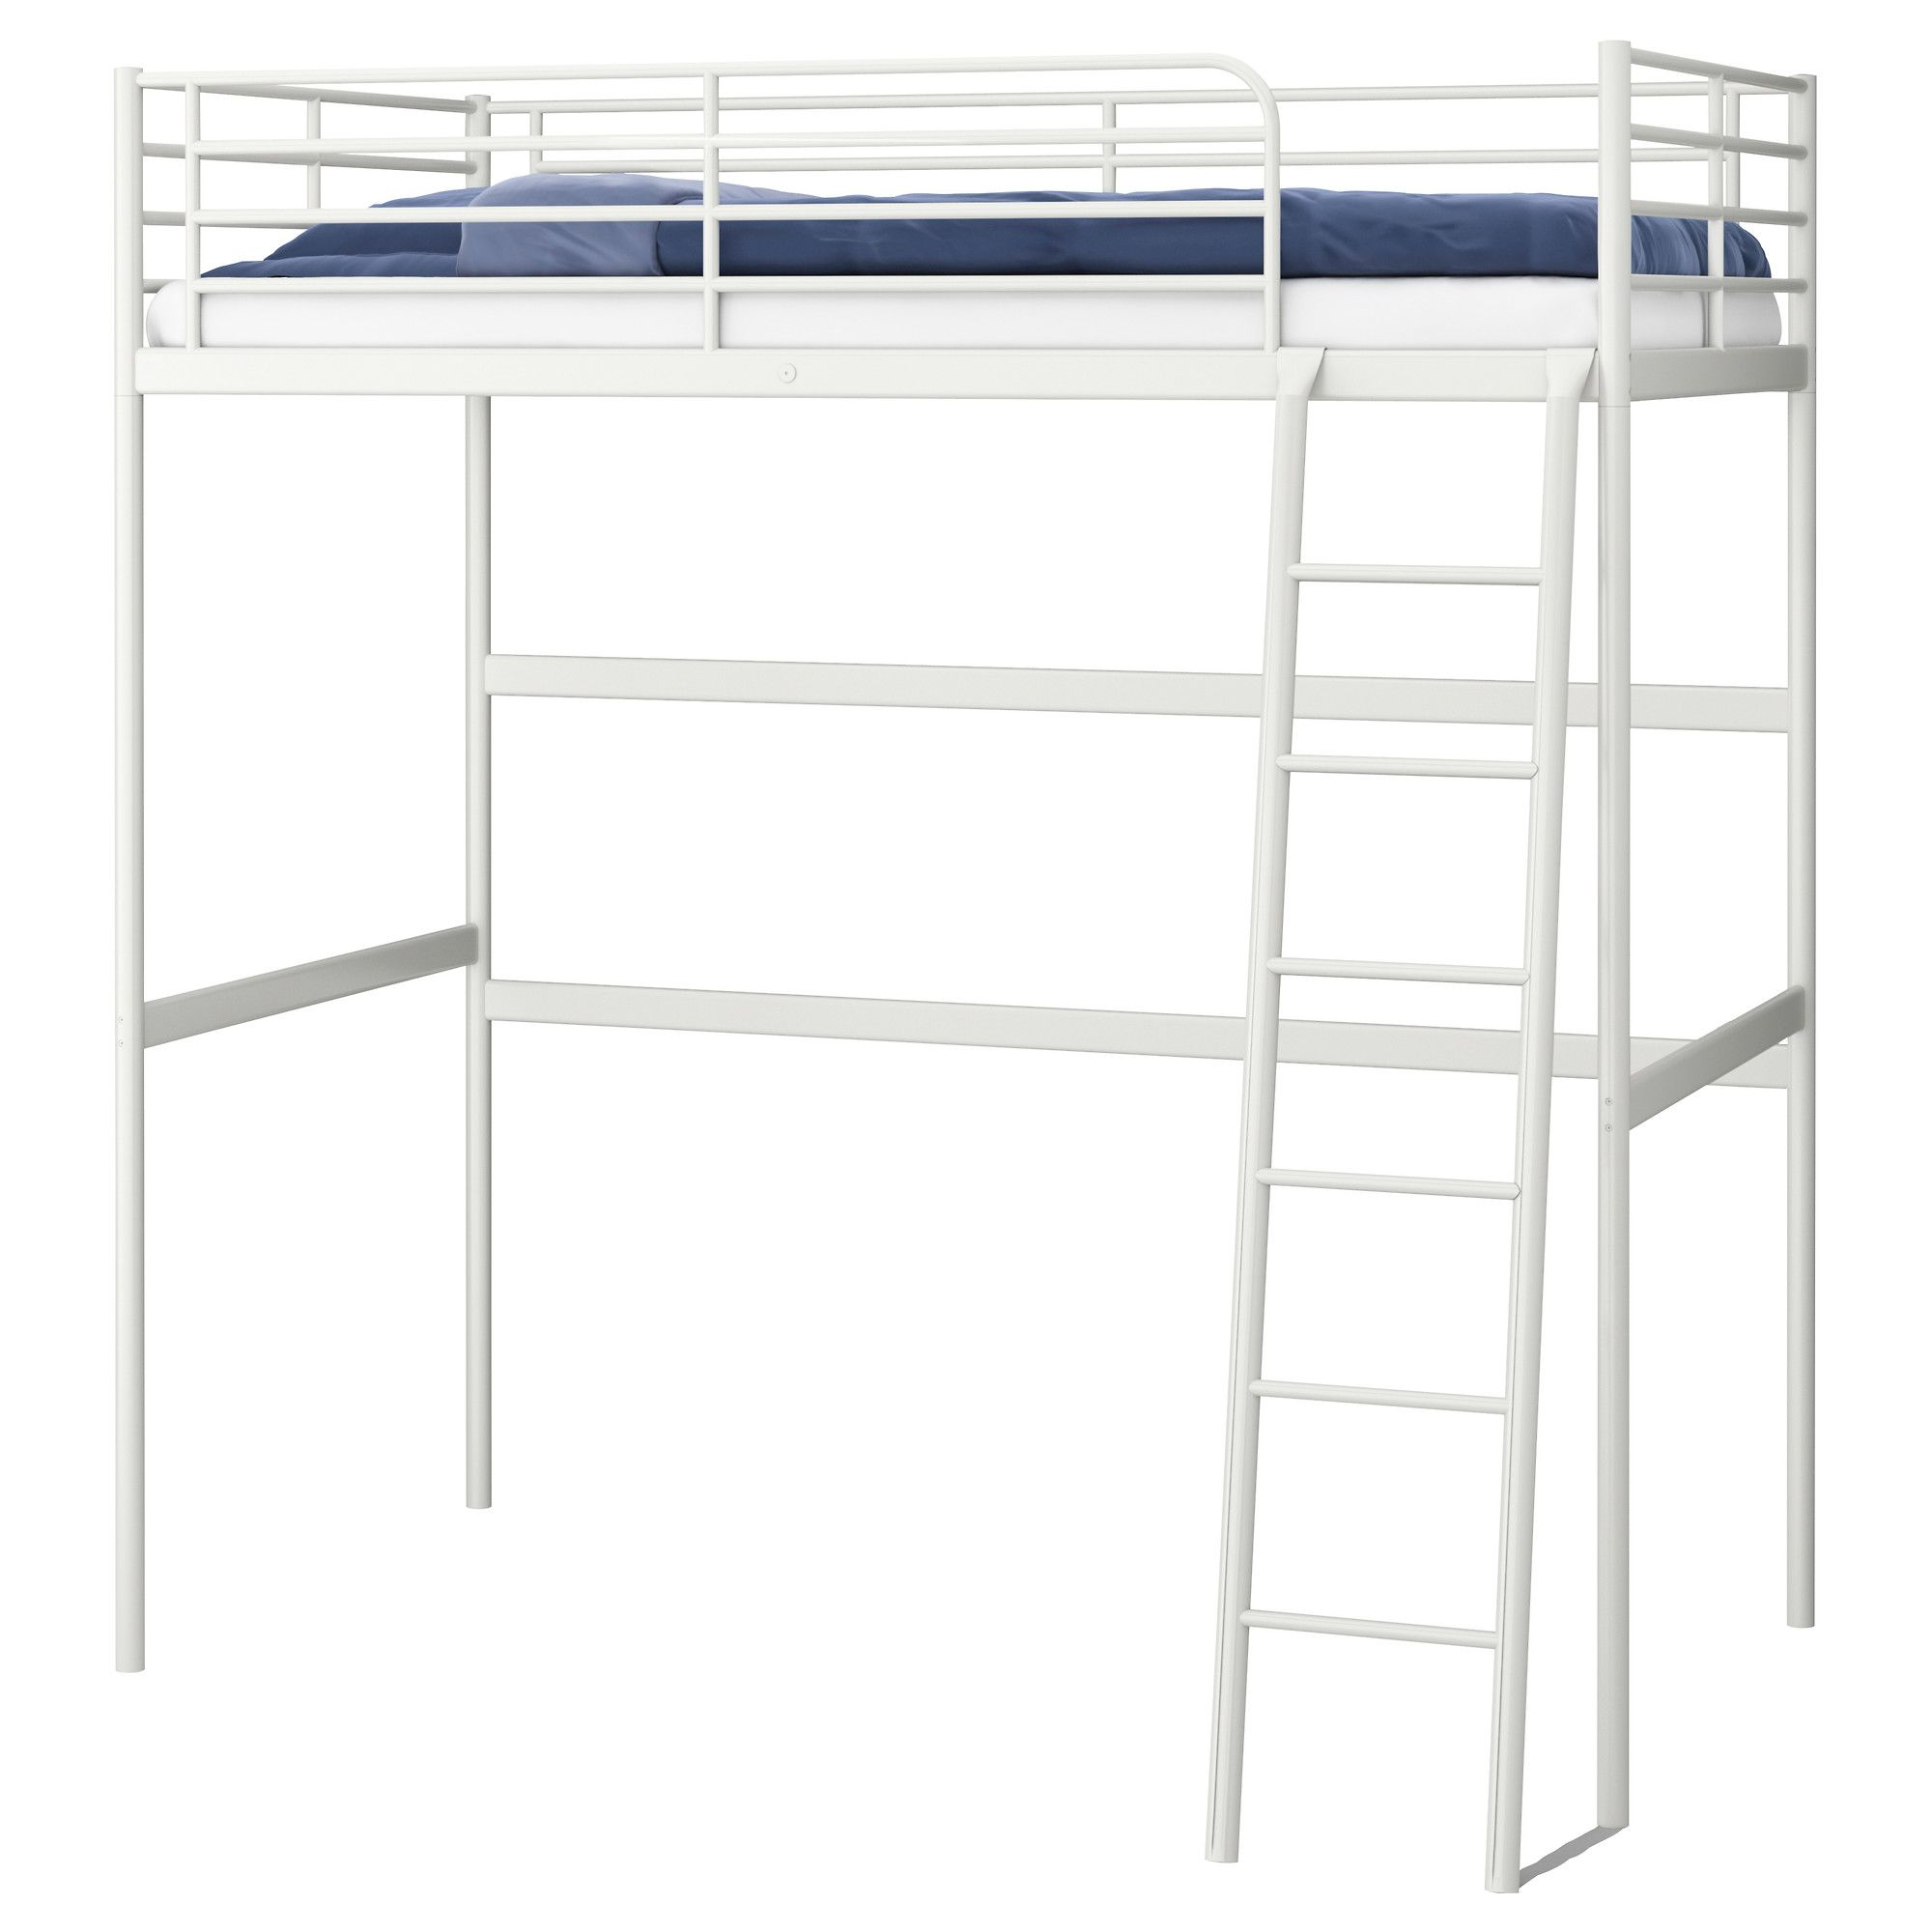 Ikea Us Furniture And Home Furnishings Loft Bed Frame Ikea Bunk Bed Ikea Loft Bed